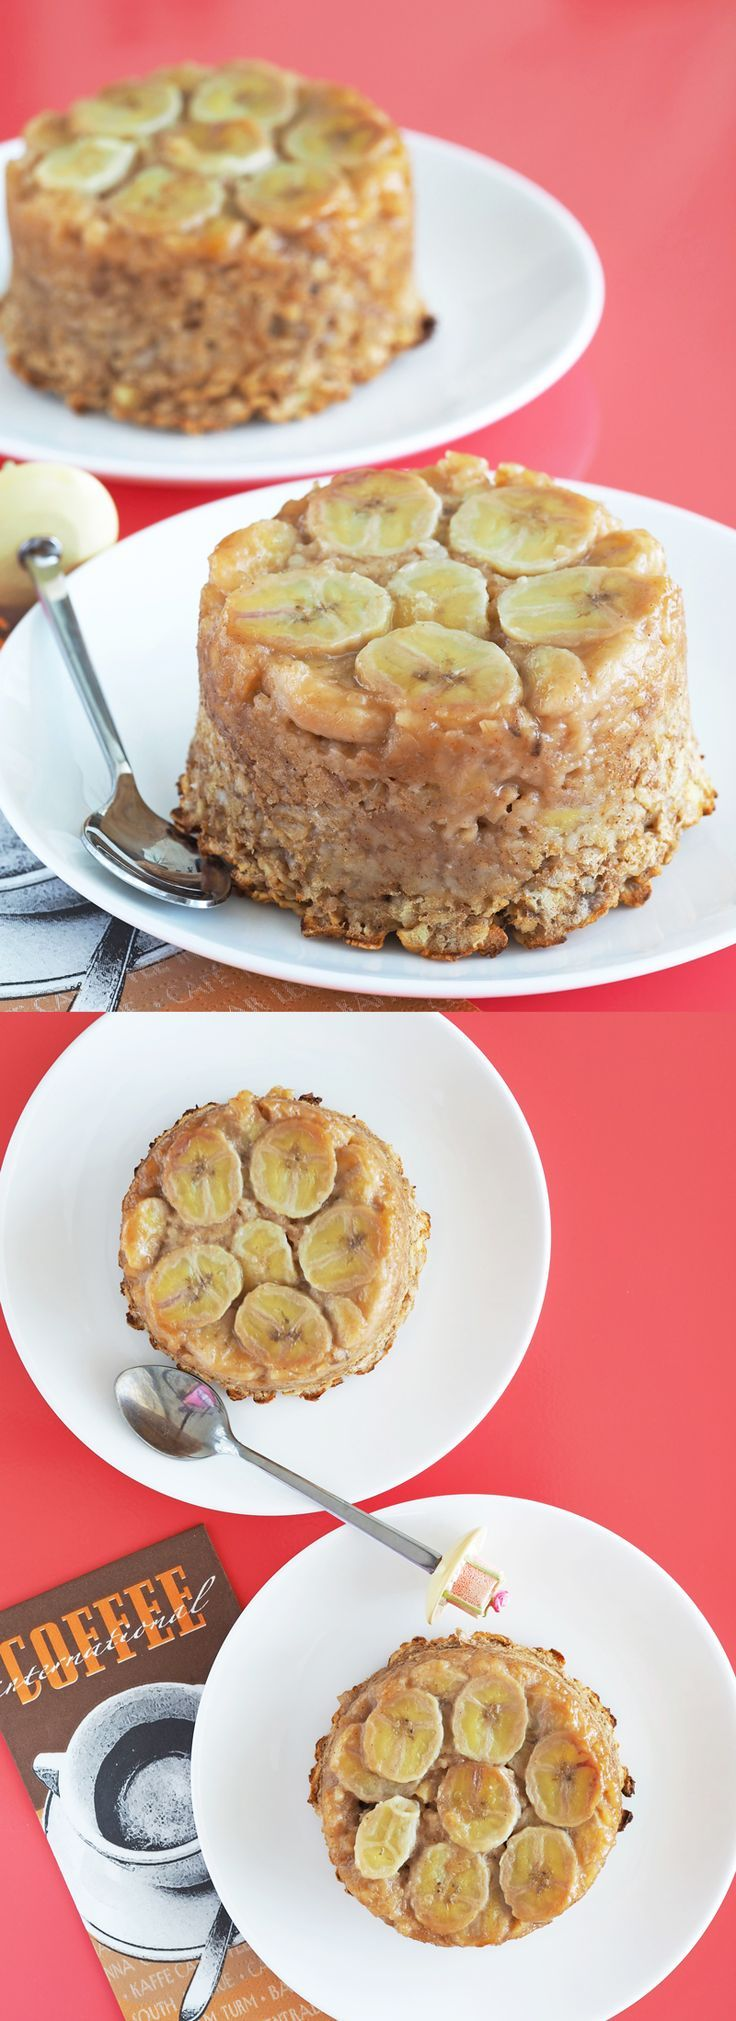 Banana Upside Down Cake Baked Oatmeal ** Instead of sugar and maple syrup use